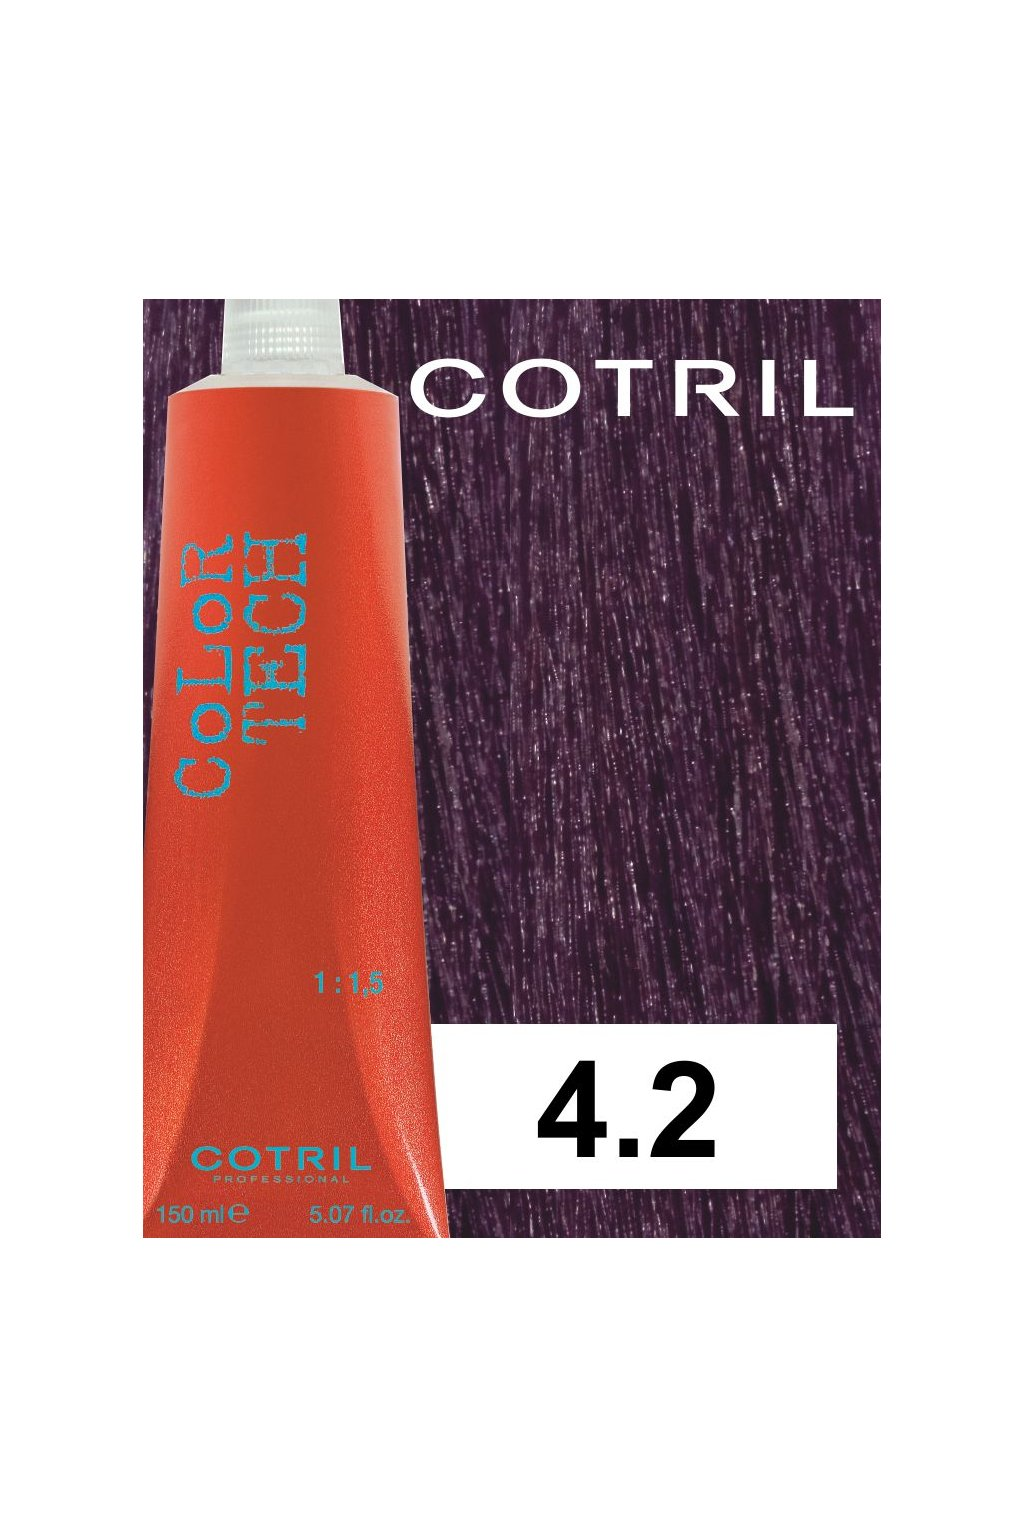 4 2 ct cotril